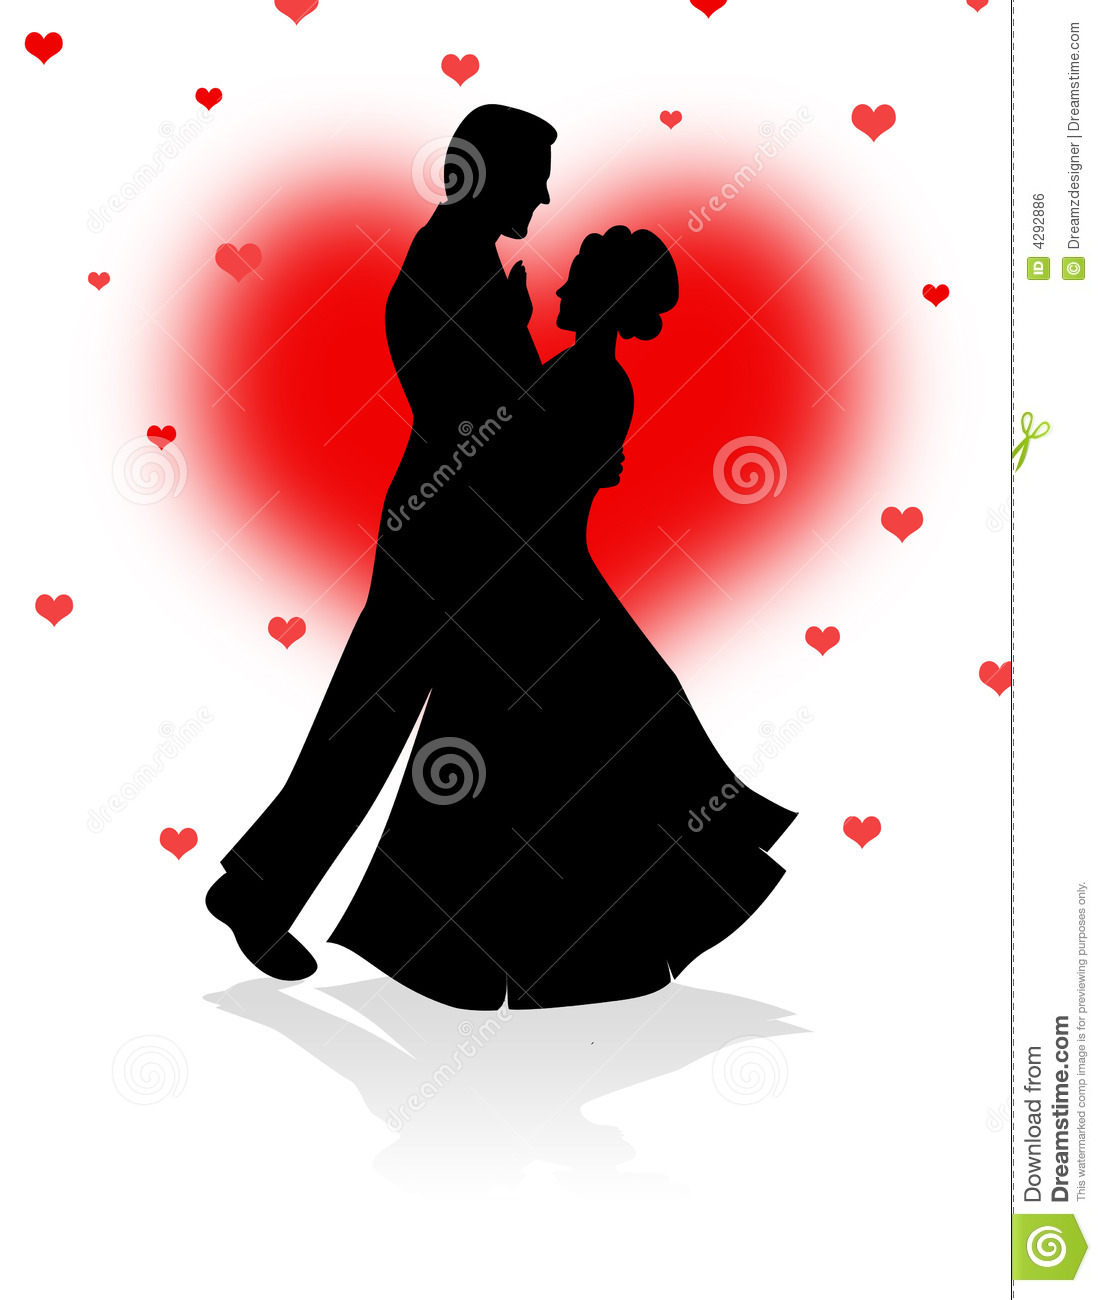 Dancing Couple With Red Hearts Background Royalty Free Stock Image ...